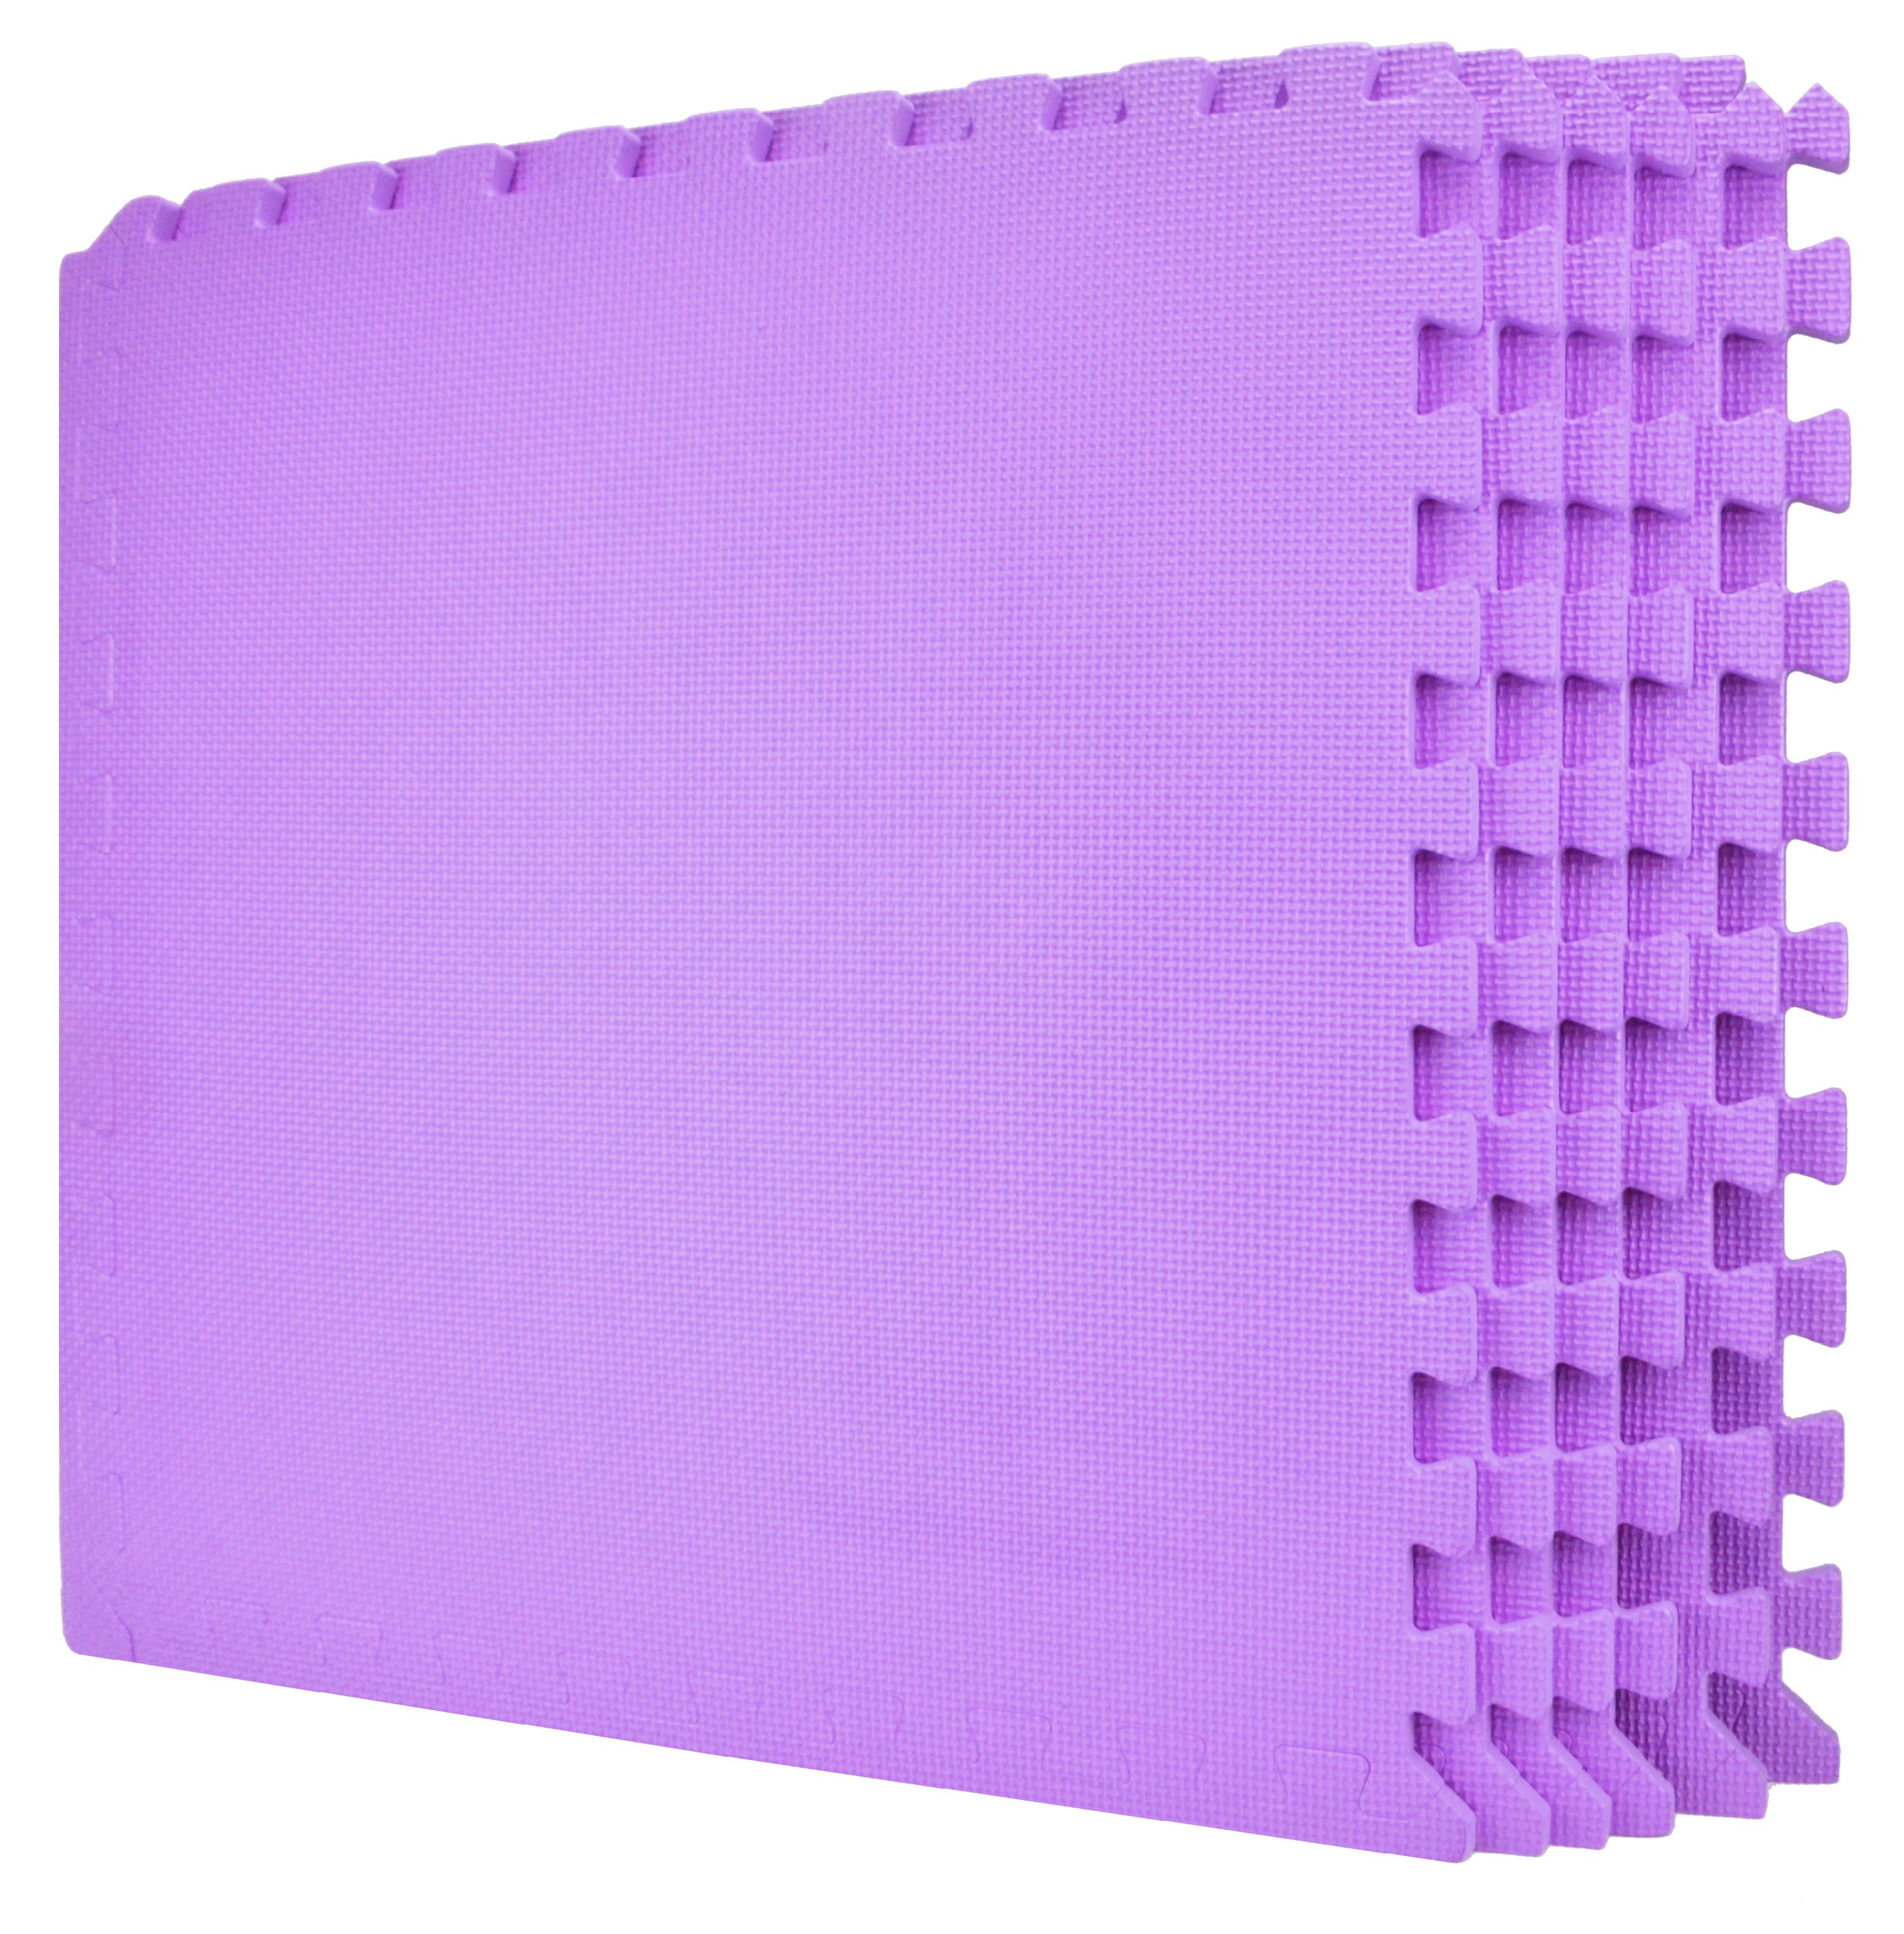 24 square feet classroom gym 24 inch pink puzzle mats eva foam top safety rated